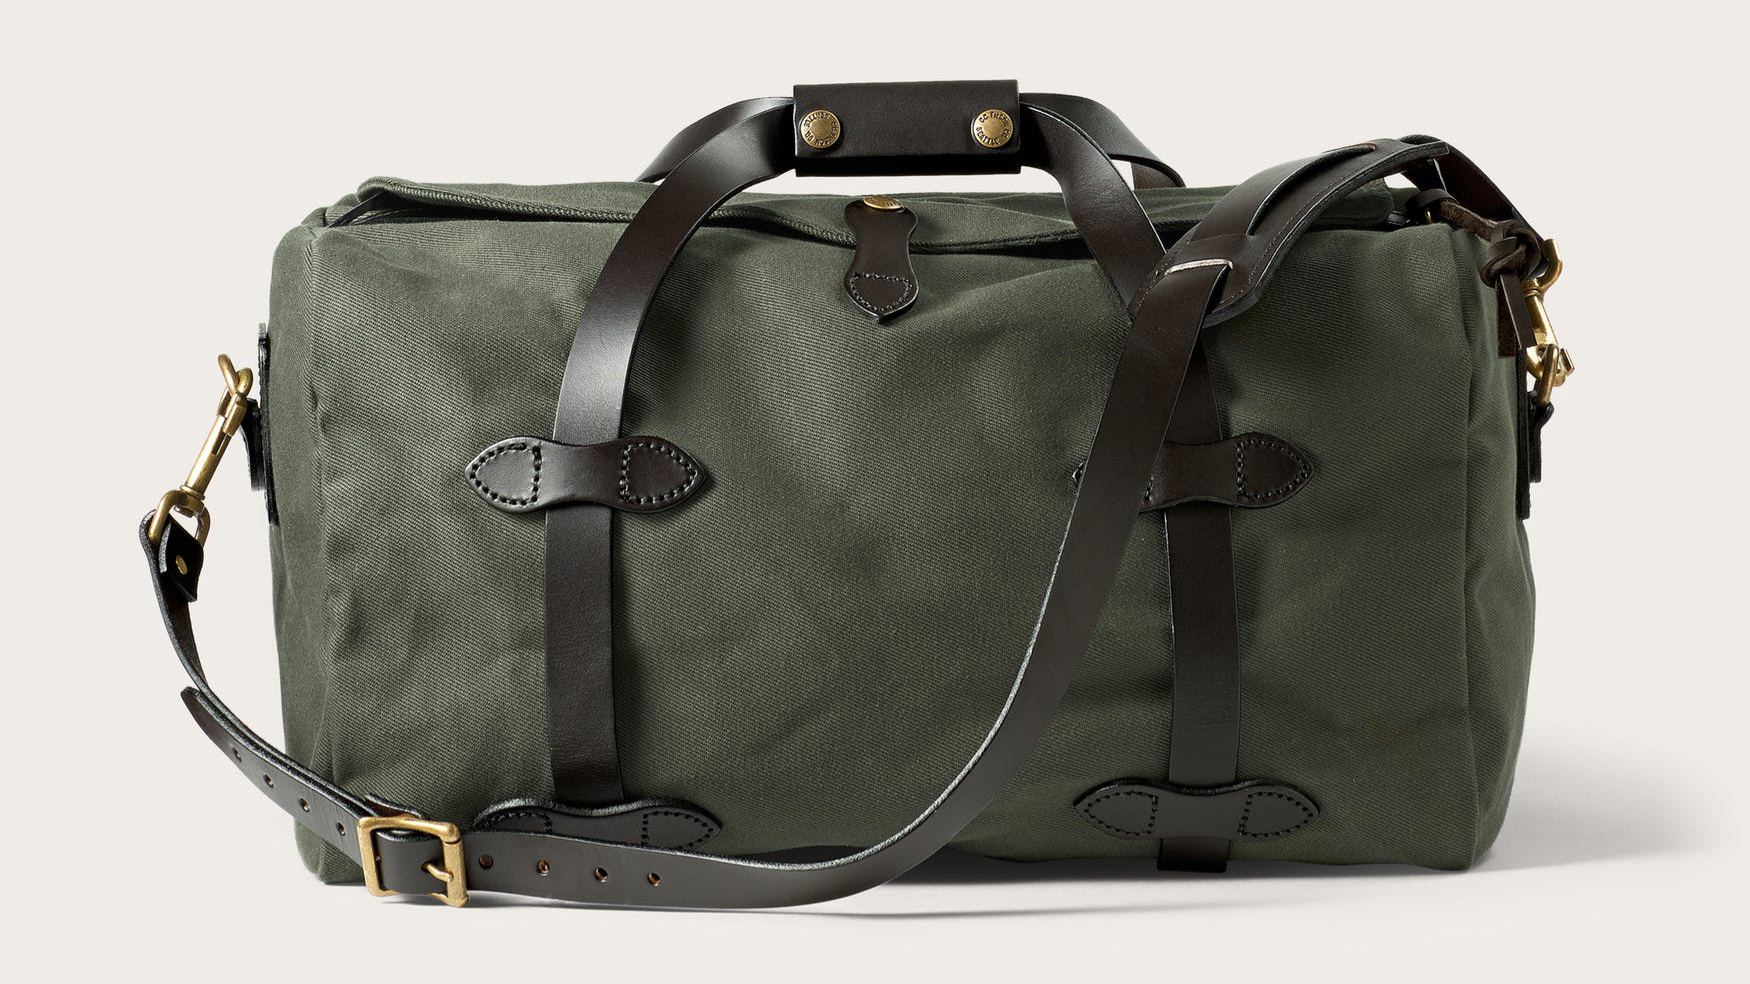 Filson Best Gym Bag For Men